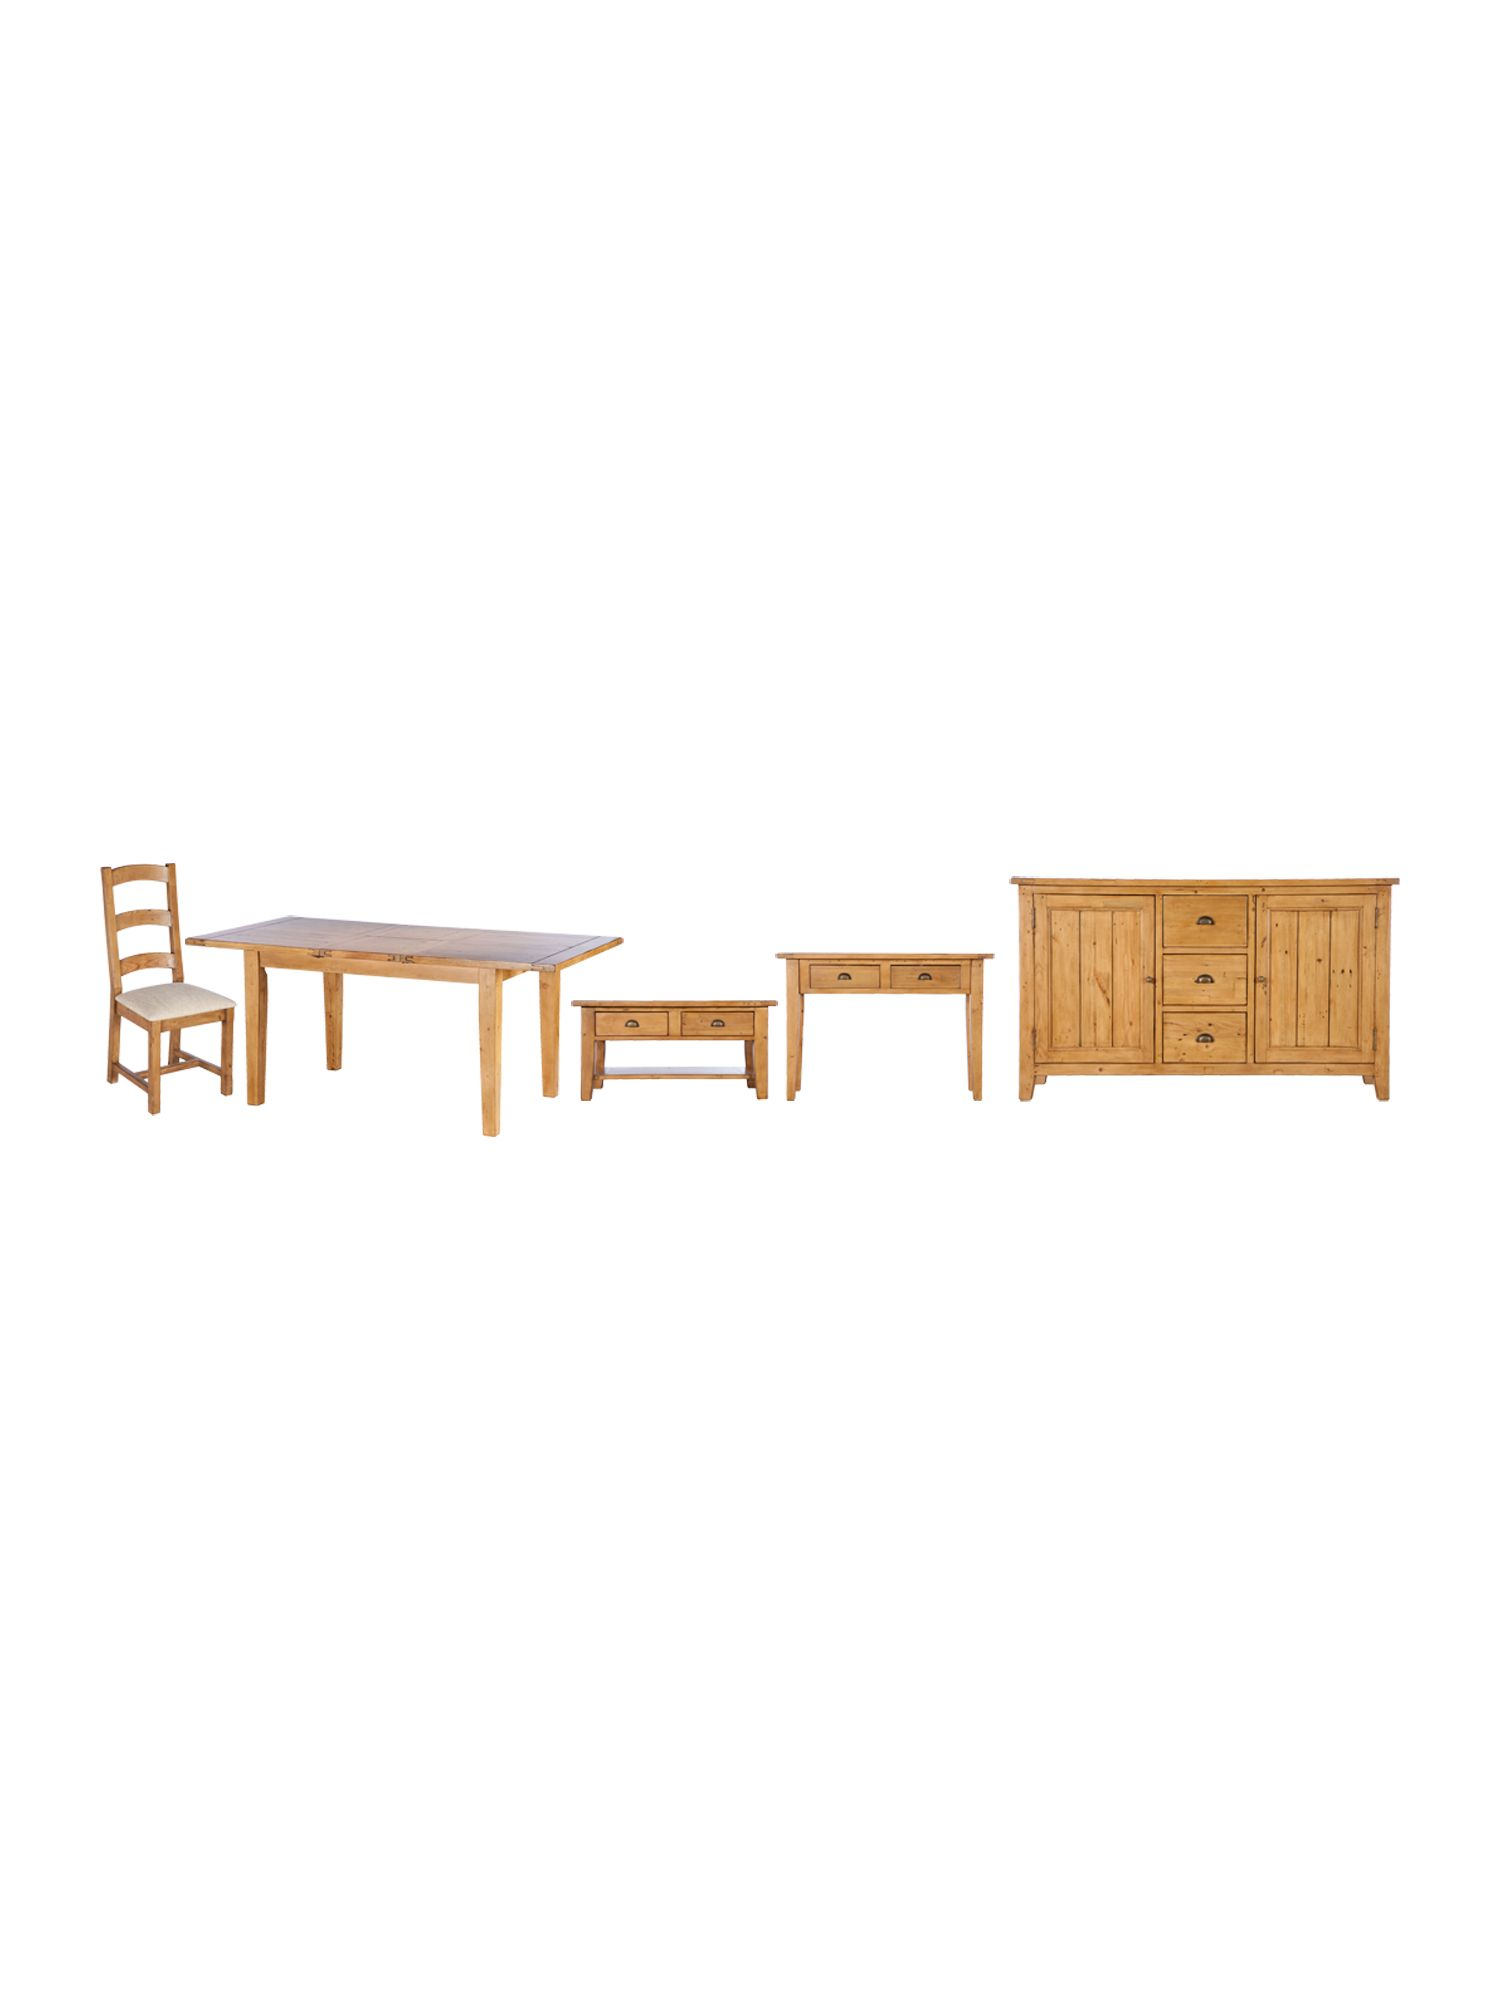 Erin living furniture range